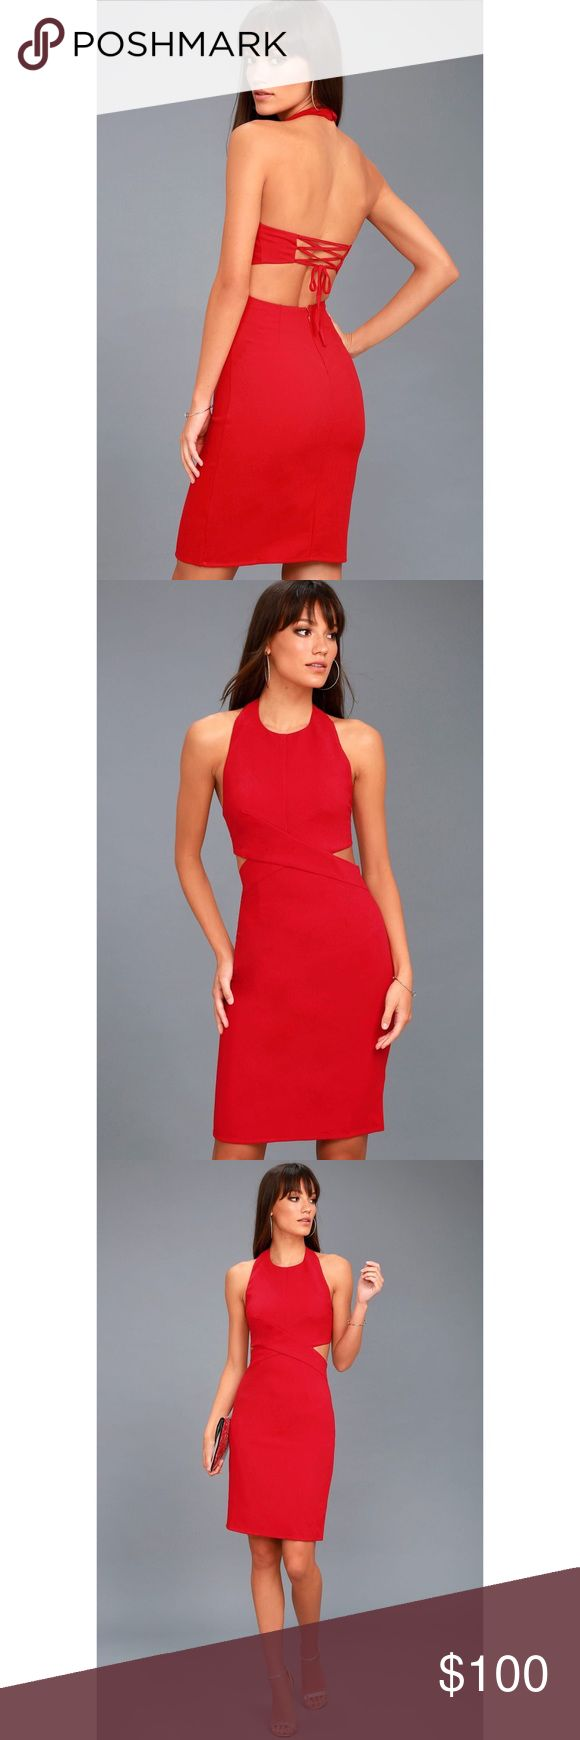 COMING SOON Lulu's Uniquely Chic Bodycon Halter Coming soon! Lulu's uniquely chic red Bodycon halter dress! NWT! Like this listing to be notified when it is in stock! Small and medium Lulu's Dresses Midi